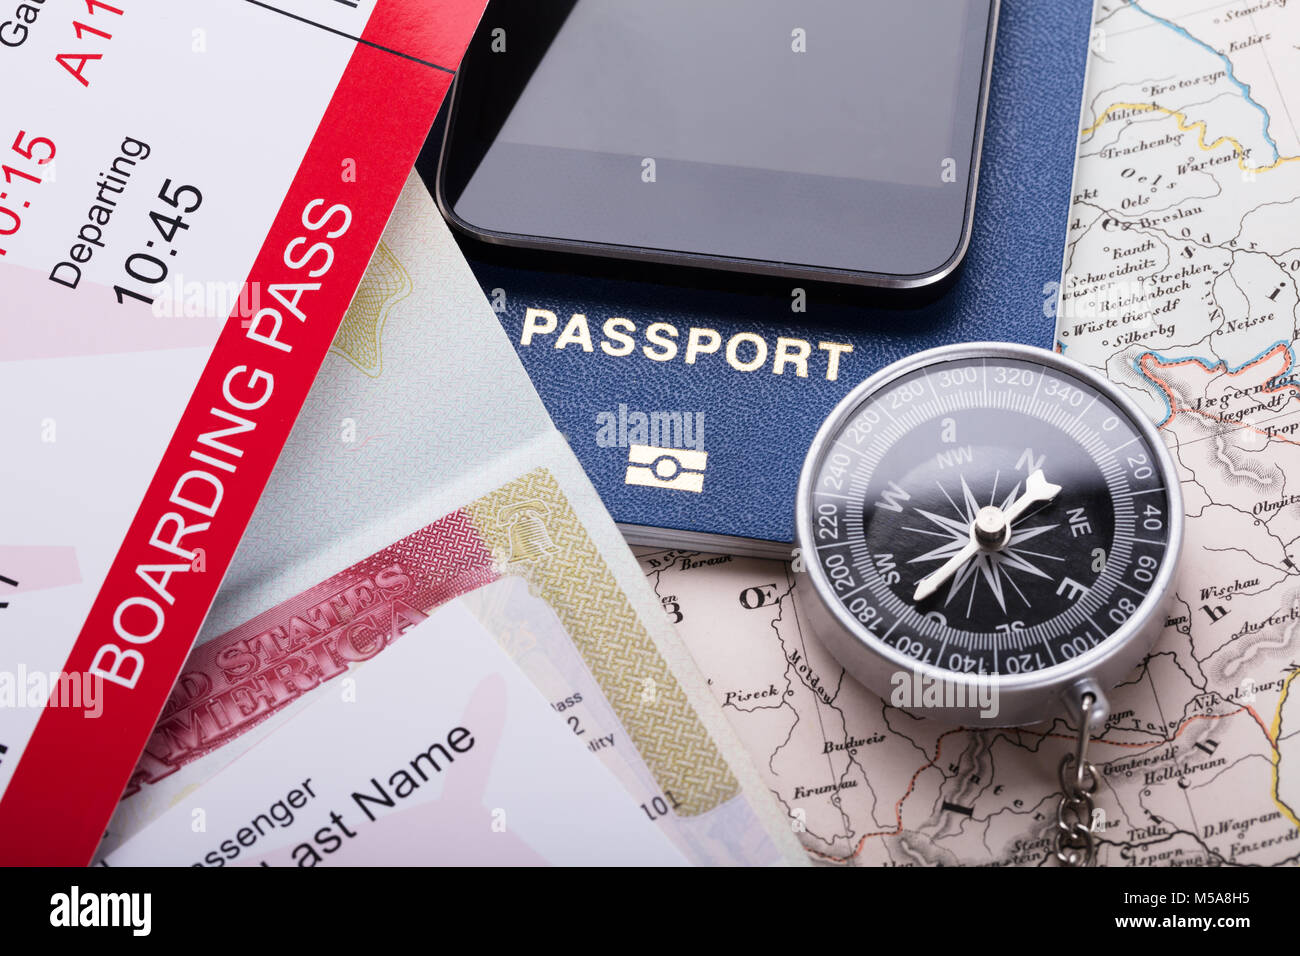 High Angle View Of Smartphone, Boarding Pass Ticket, Passport And Compass On Map - Stock Image